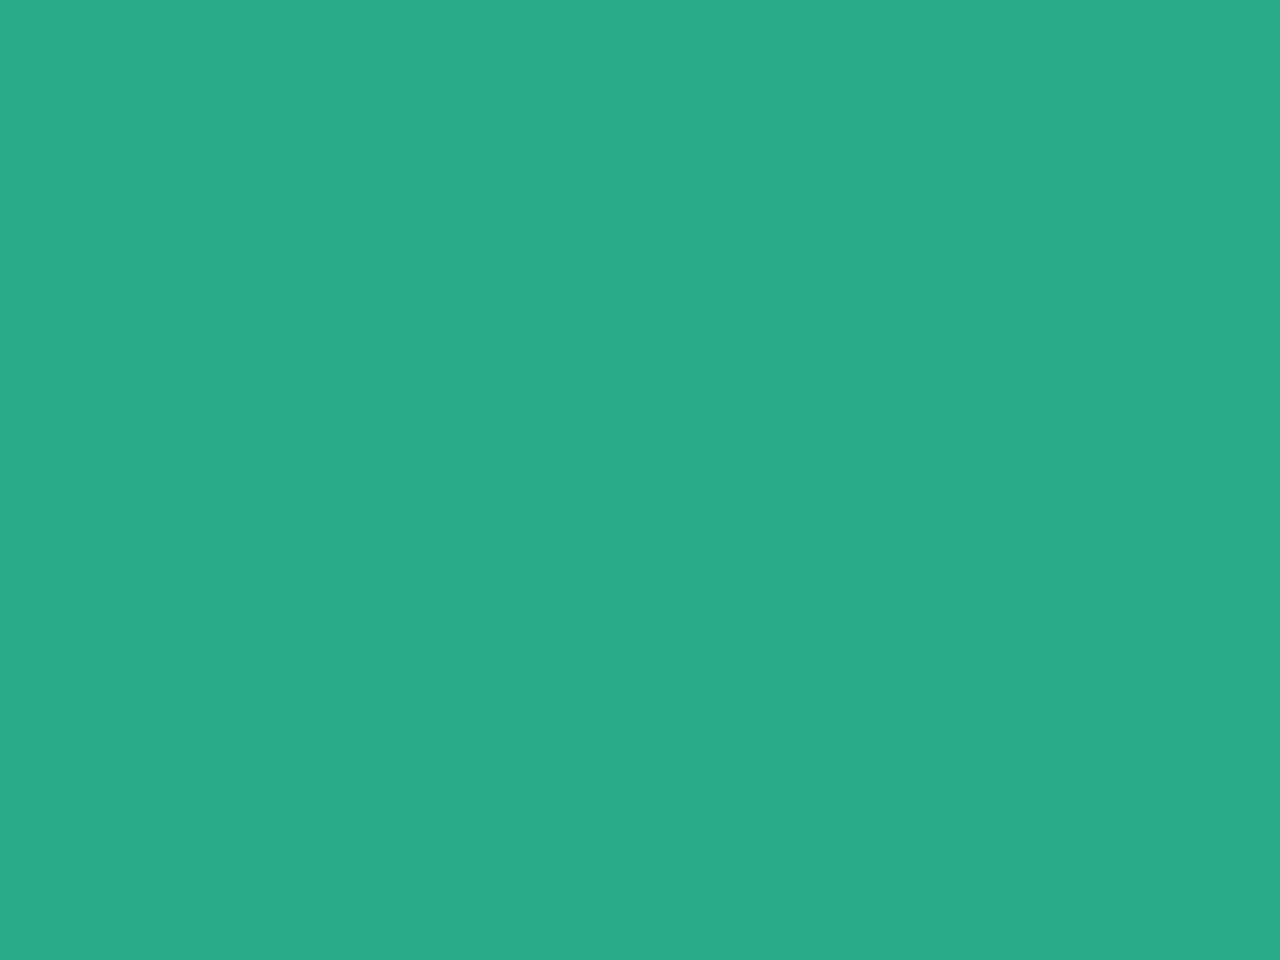 1280x960 Jungle Green Solid Color Background